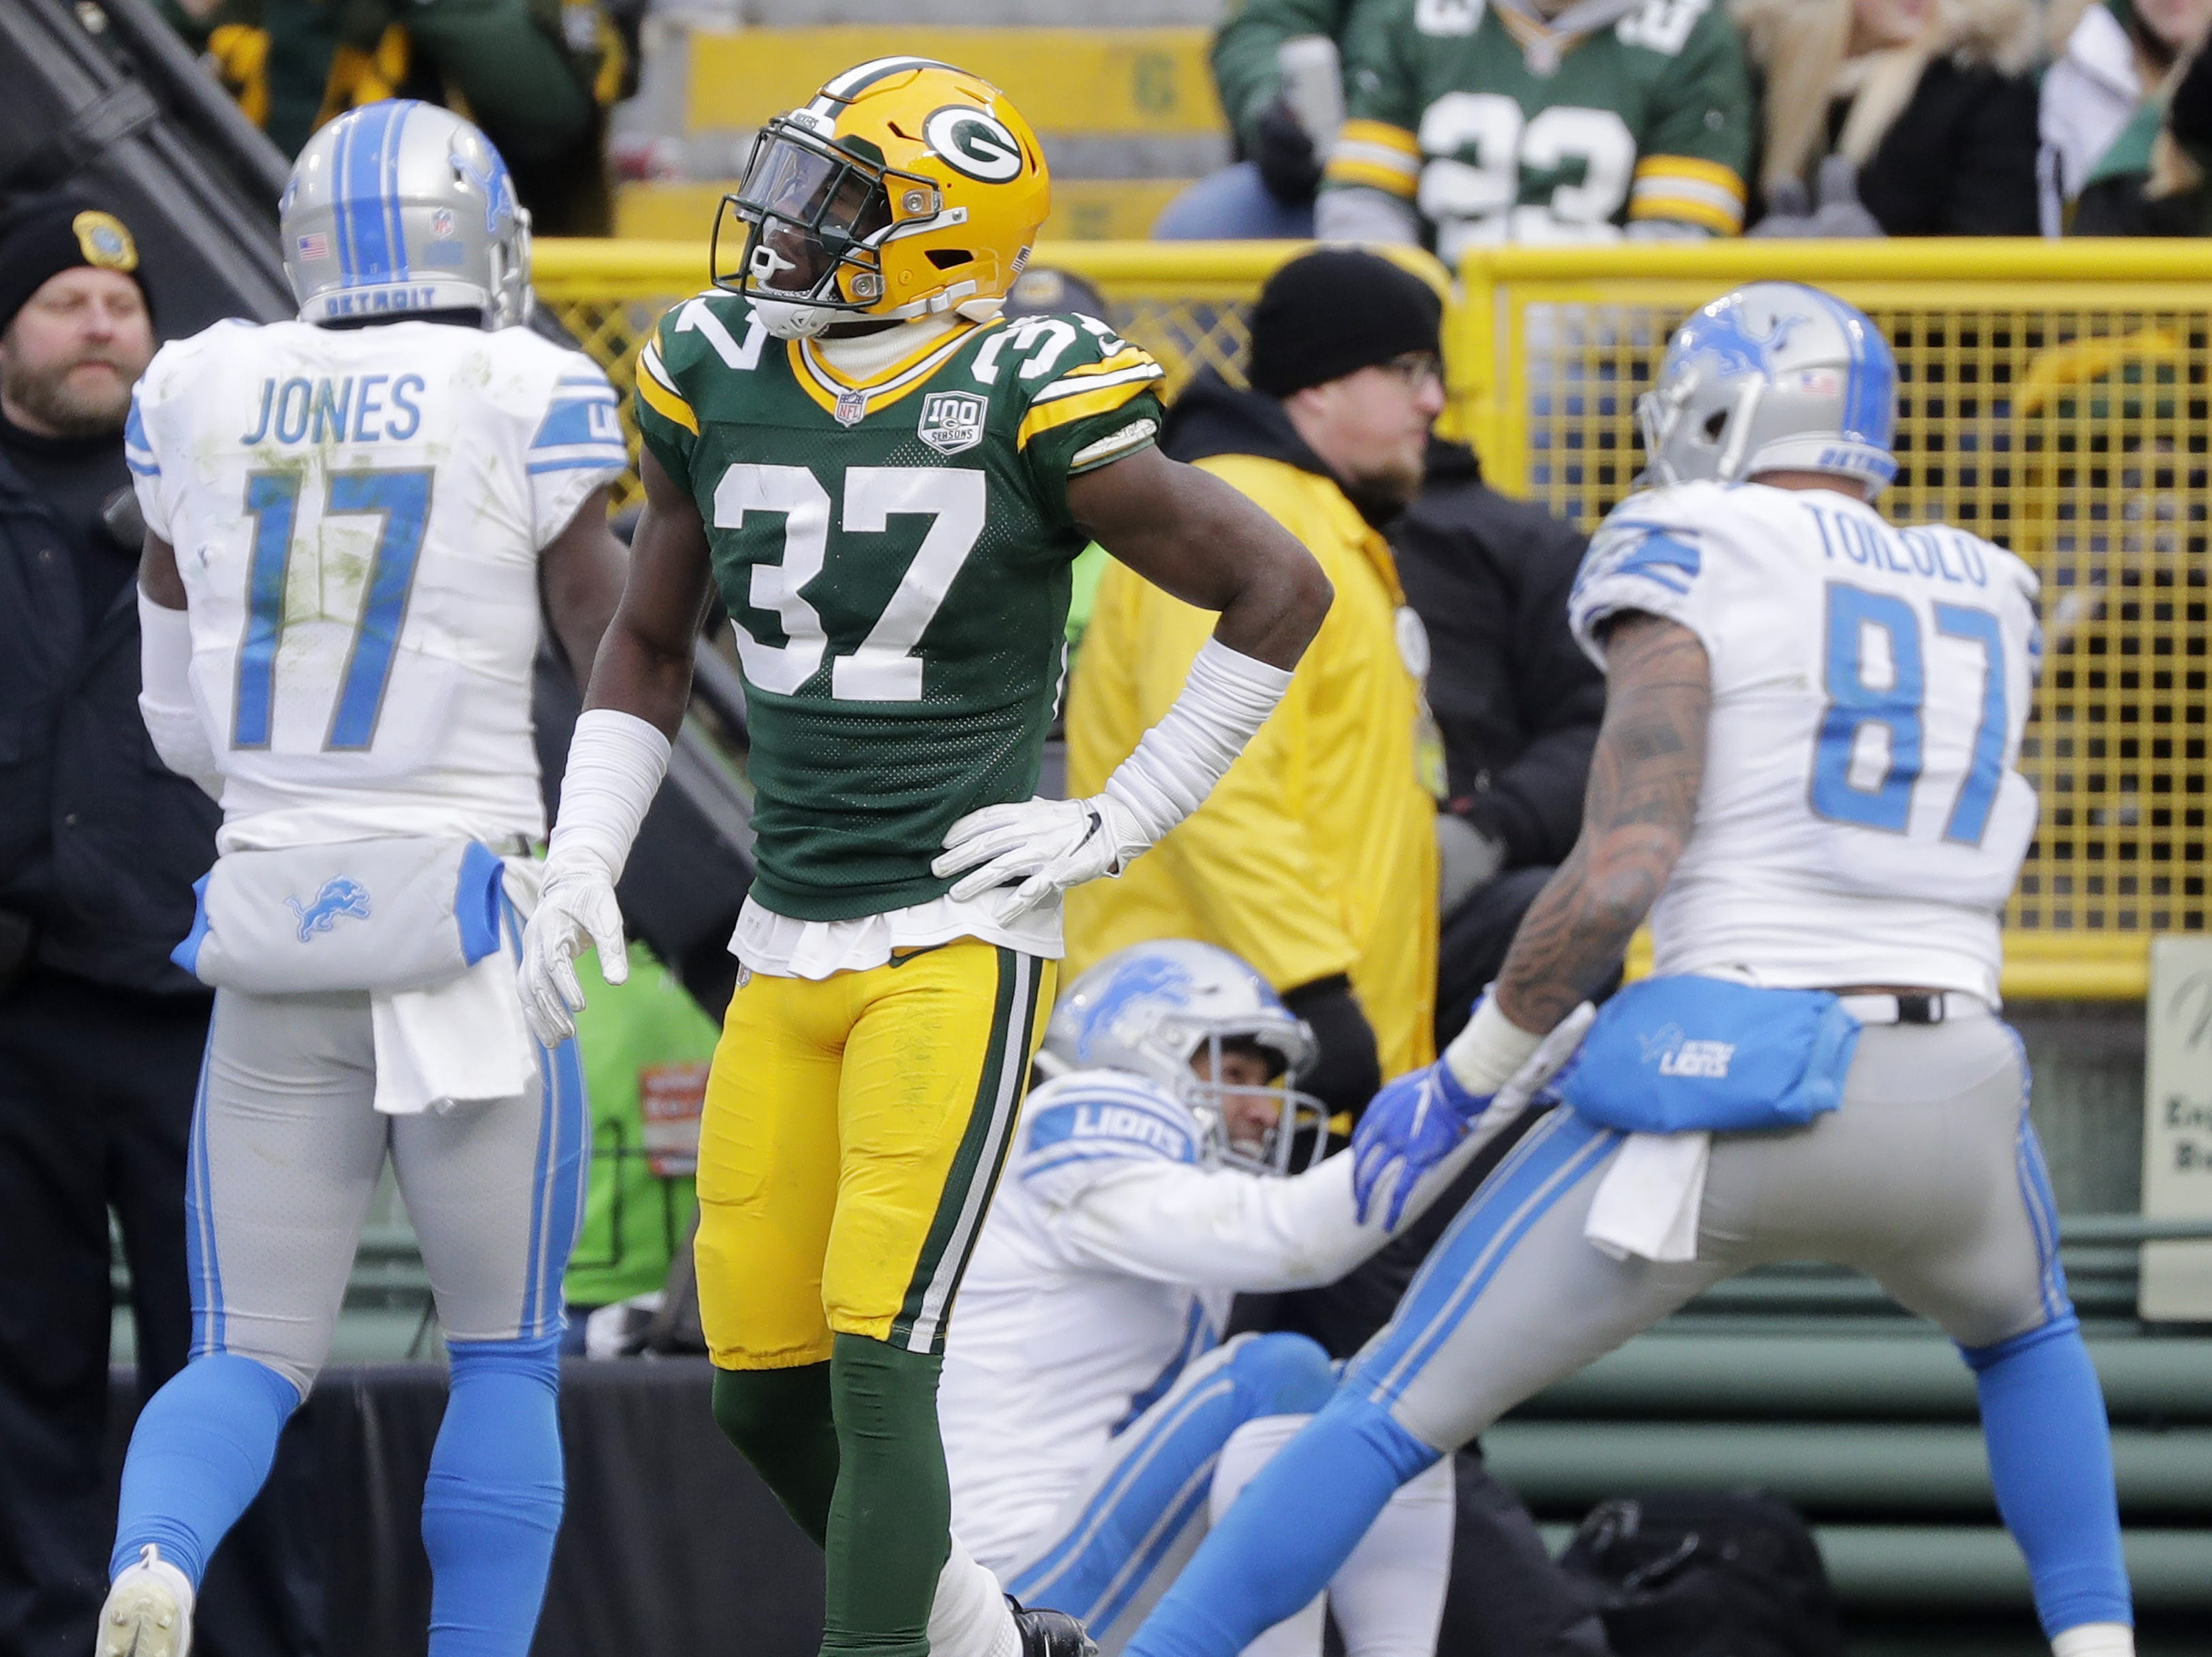 Green Bay Packers cornerback Josh Jackson (37) walks away after Detroit Lions wide receiver T.J. Jones (13) caught touchdown pass beyond Jackson's coverage in the fourth quarter at Lambeau Field on Sunday, December 30, 2018 in Green Bay, Wis. Adam Wesley/USA TODAY NETWORK-Wis